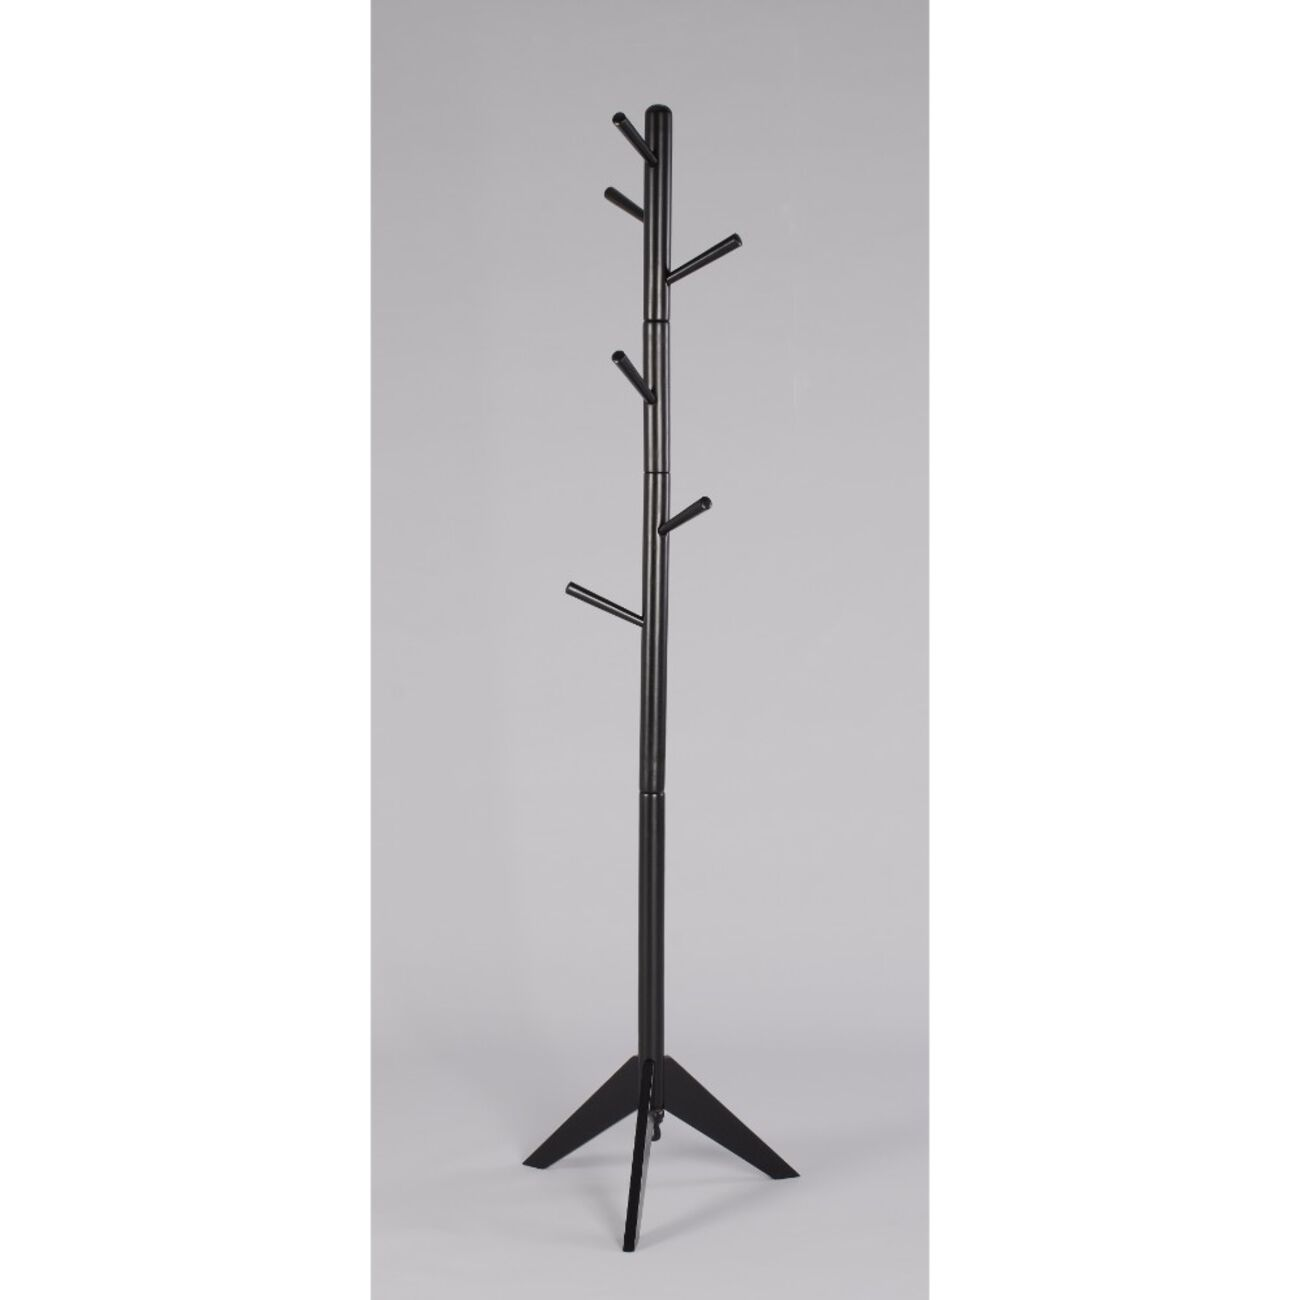 Contemporary Style Hall Tree Coat Rack, Black